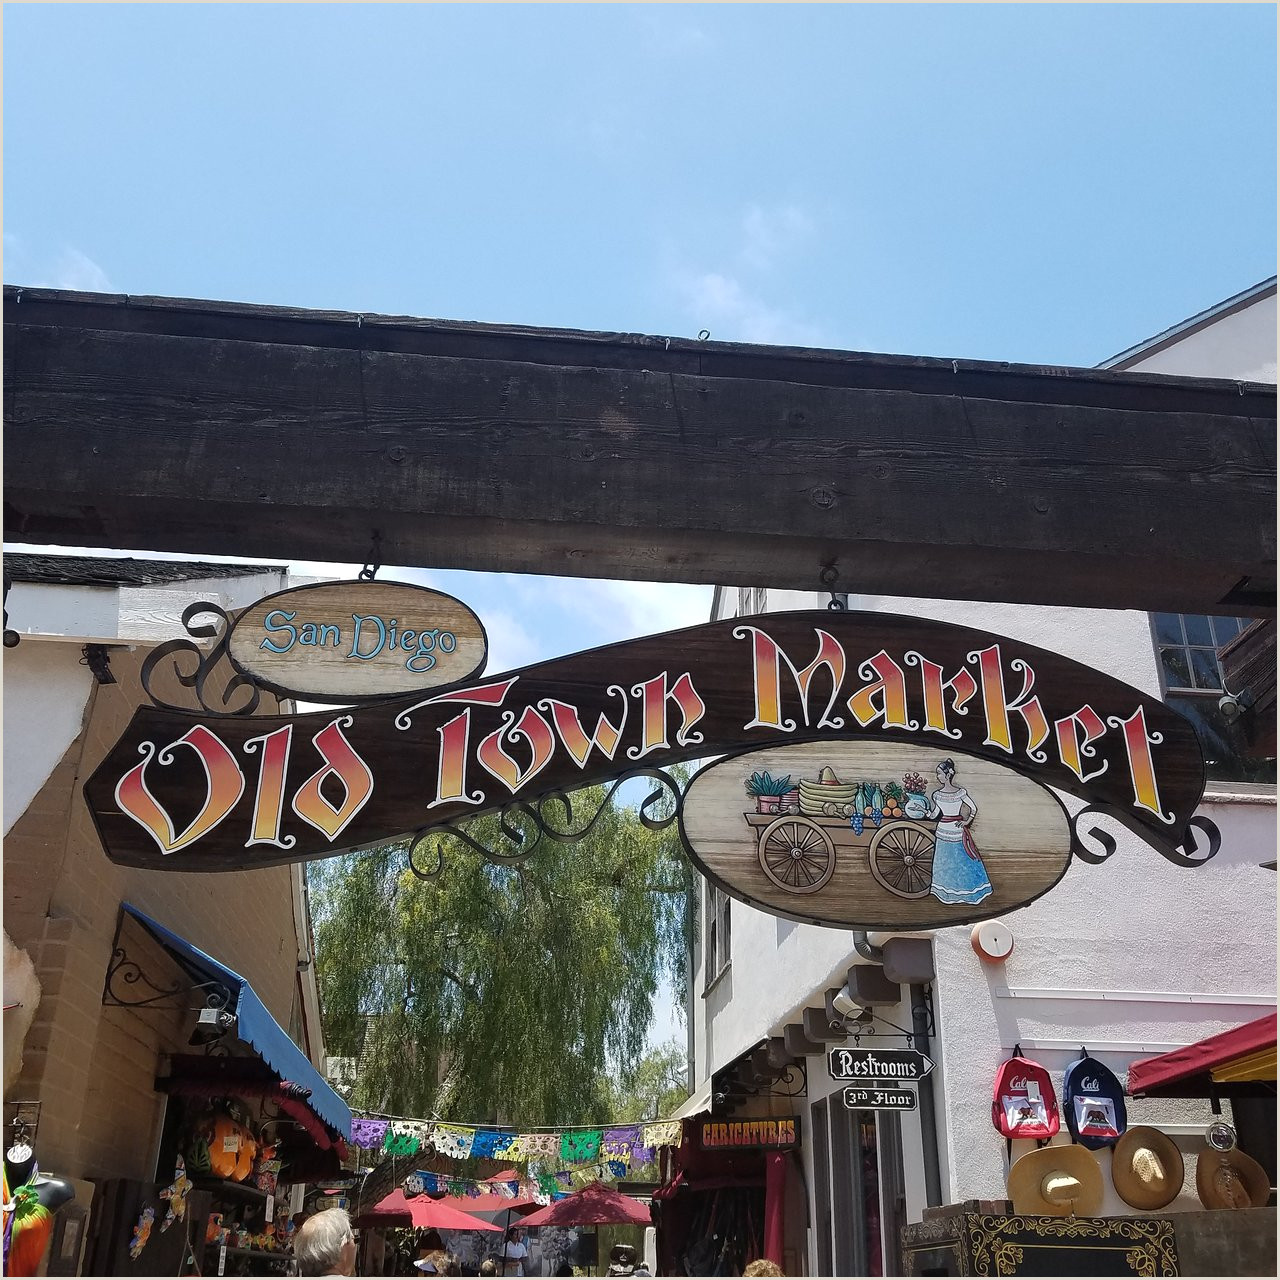 Best Business Cards In San Diego, Ca Old Town Artisan Market San Diego 2020 All You Need To